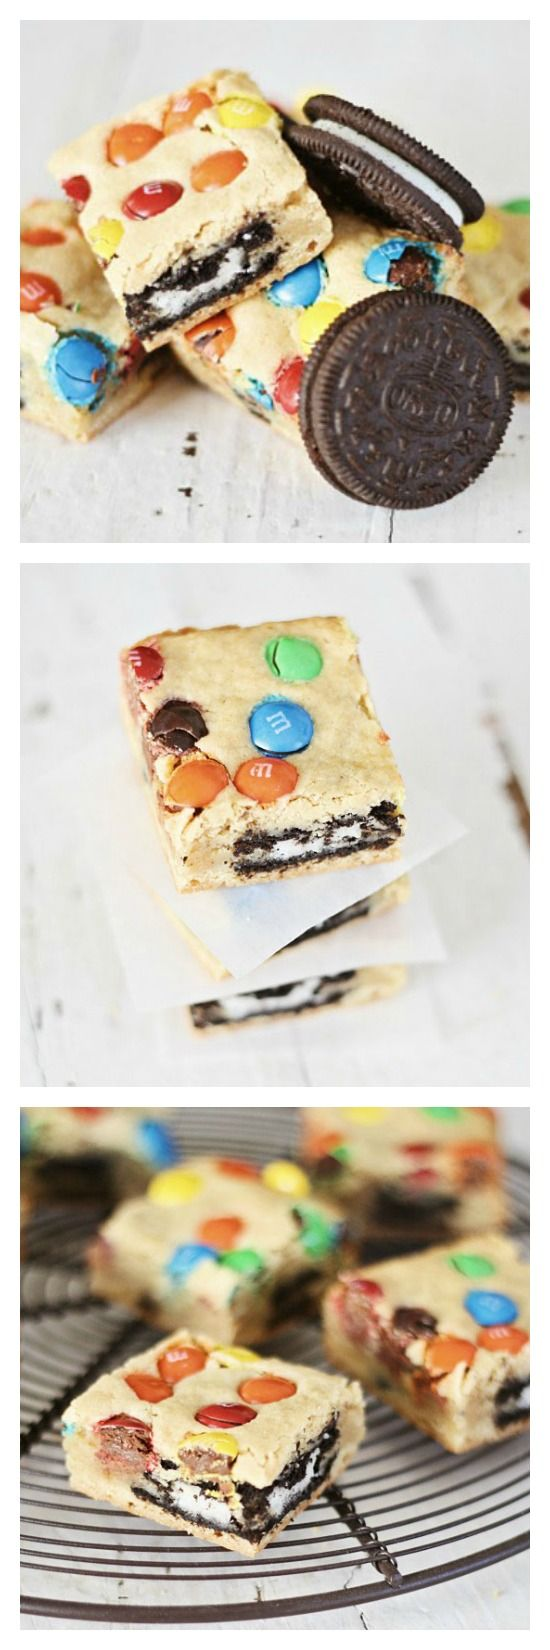 Loaded M&M's and Oreo Cookies Bars, crazy addictive with all your favorites in one bite. Make them today!